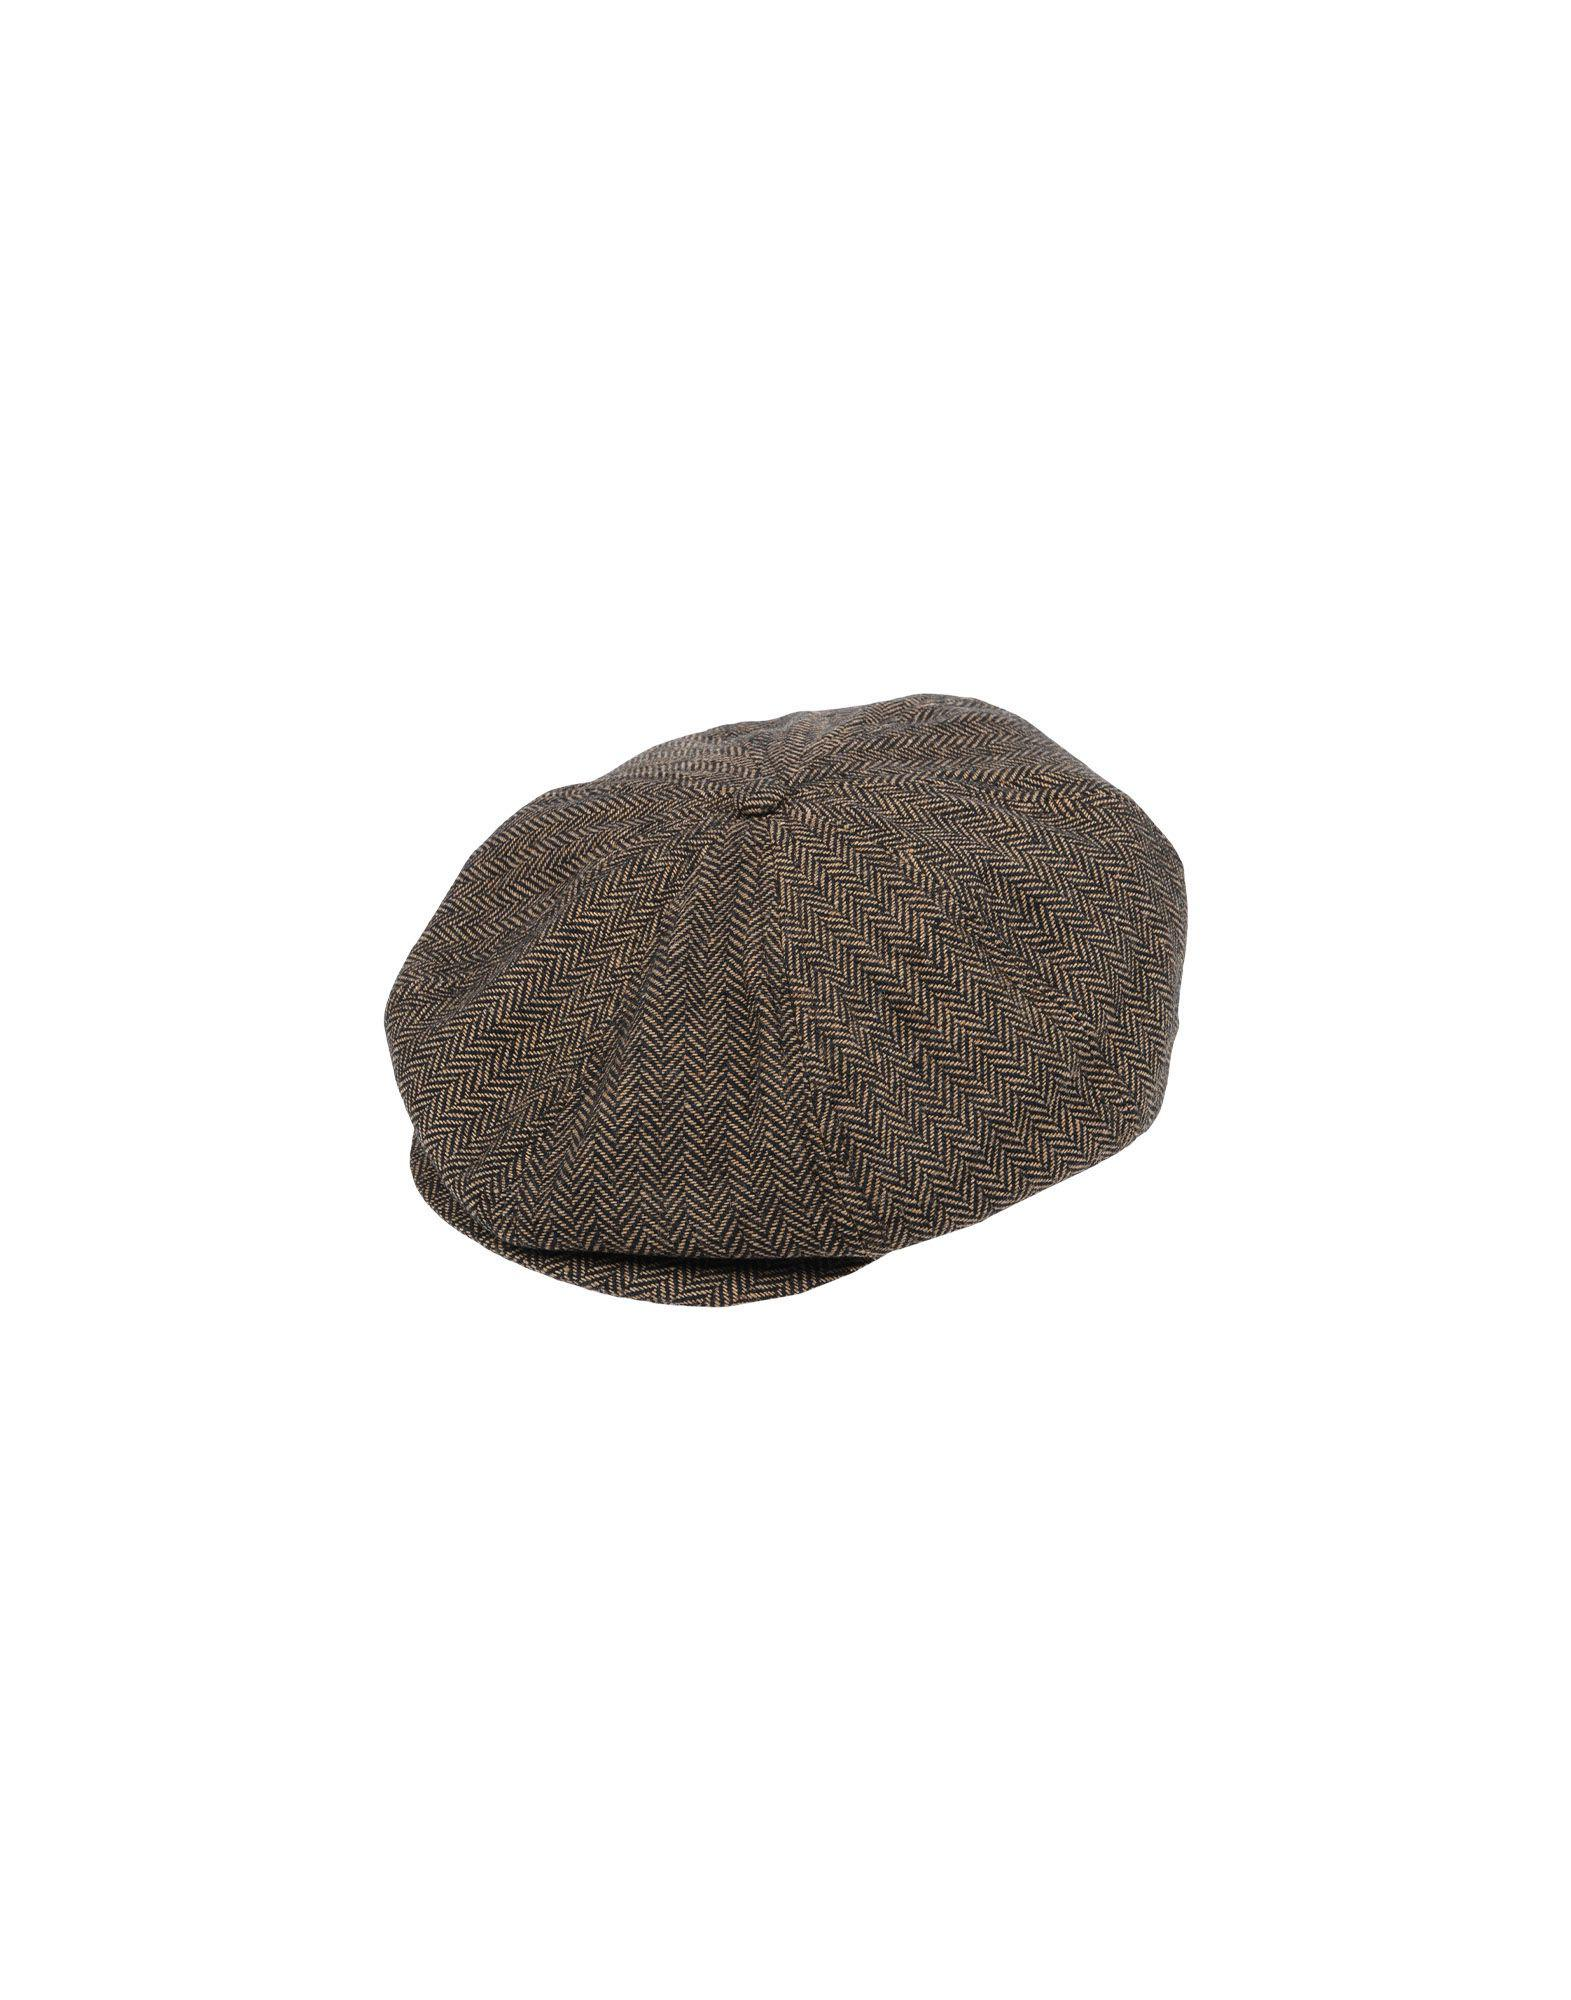 00f694a5e1dee ... coupon code for brixton. mens hat 143c7 6629e